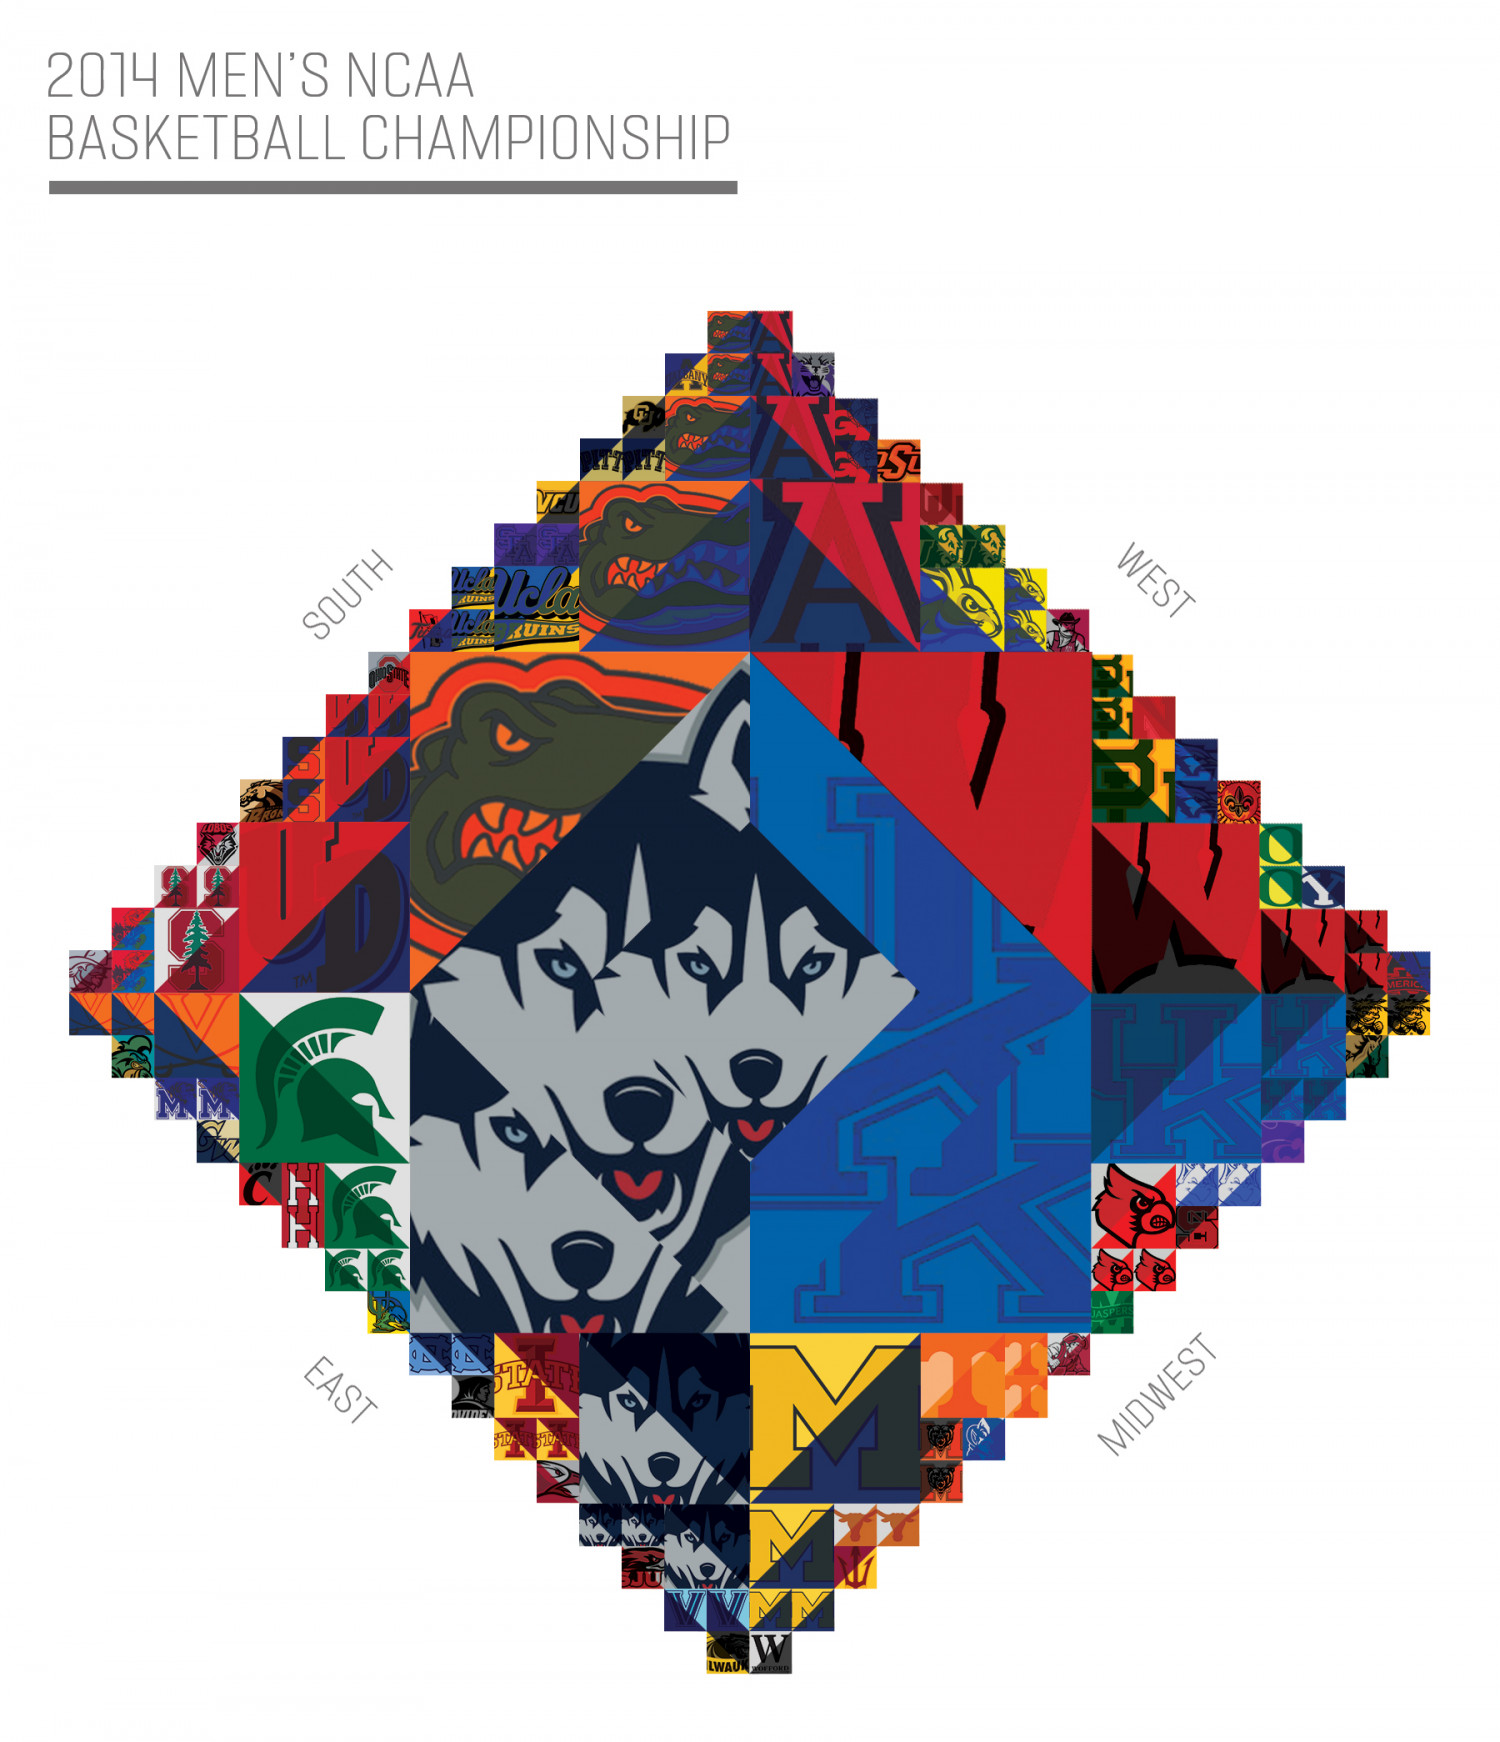 2014 NCAA Men's  Basketball Championship Bracket Infographic